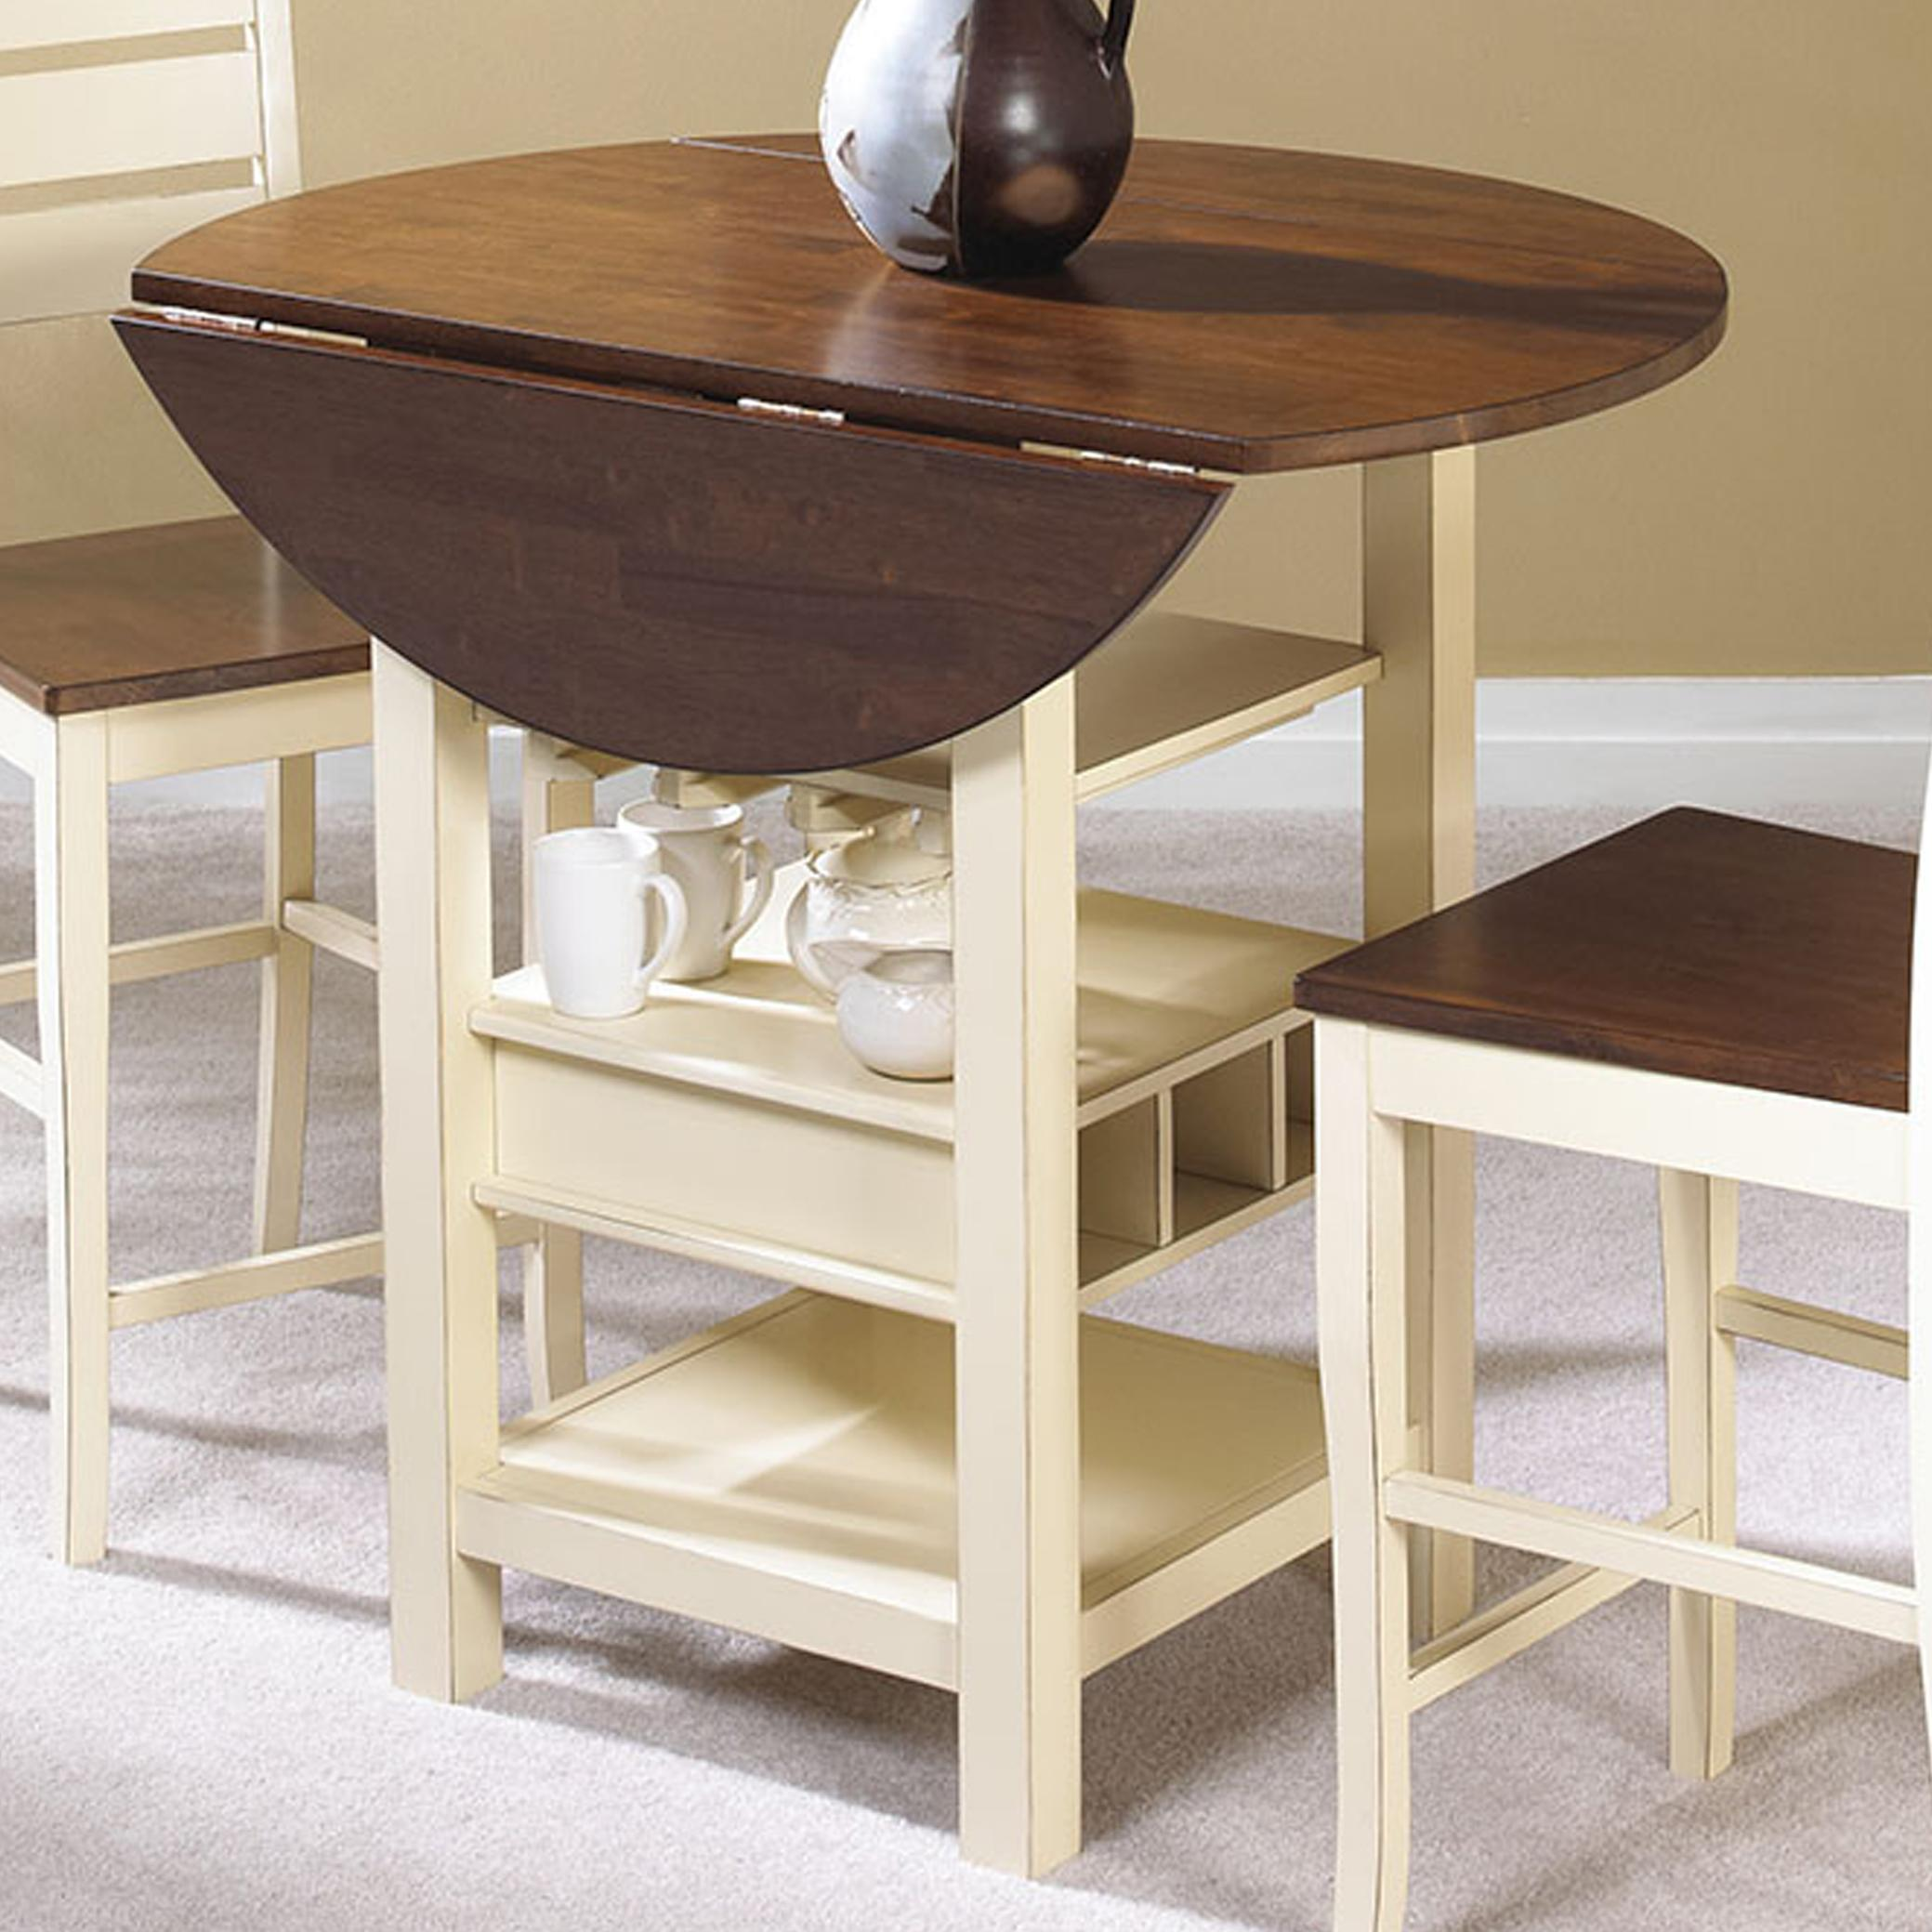 Delicieux Drop Leaf Pub Table